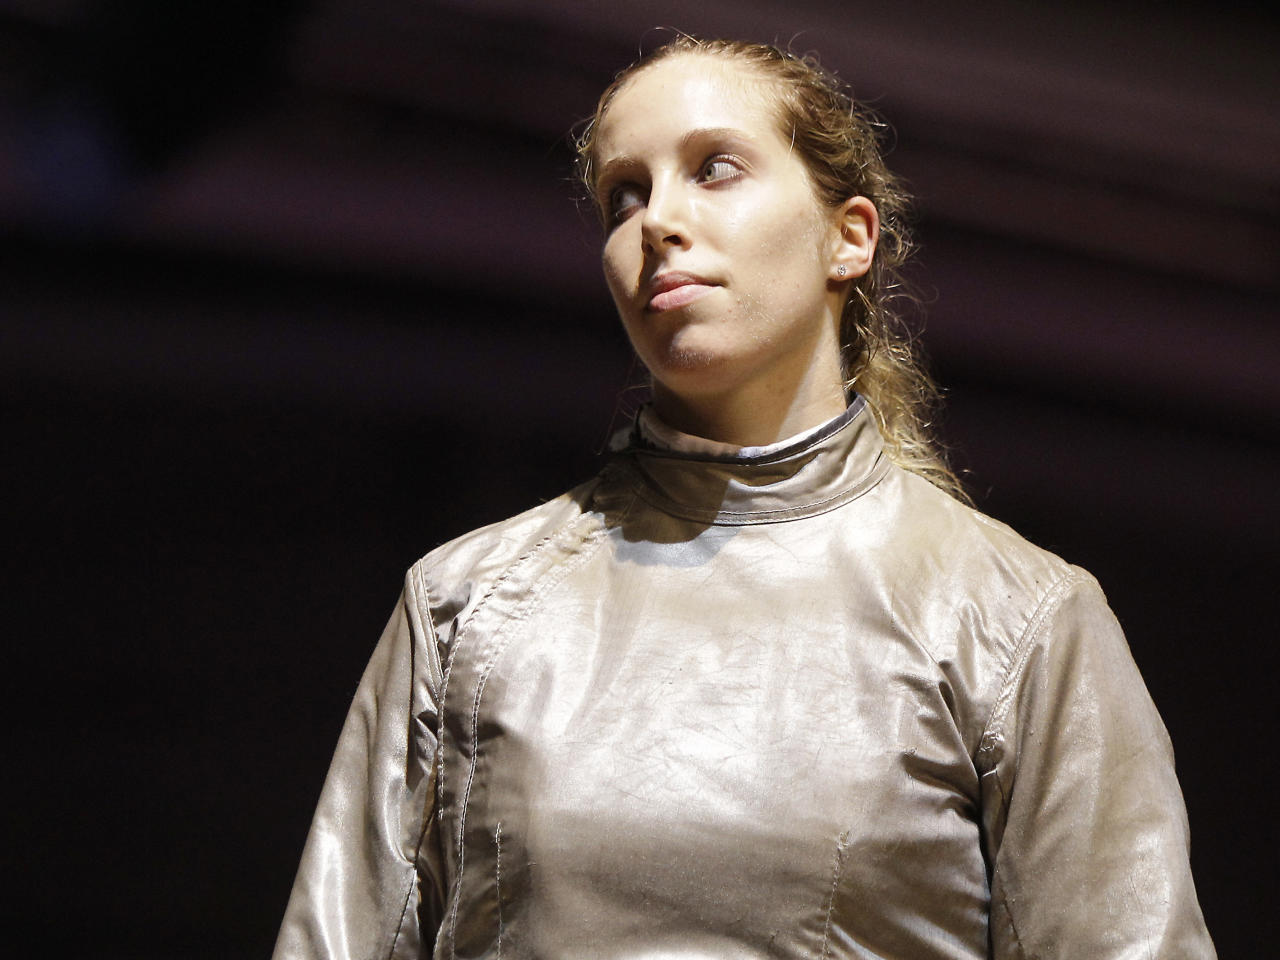 Mariel Zagunis, of the United States, reacts after losing against Russia's Velikaia Sophia during a women's team saber qualifying match at the World Fencing Championship in Catania, Italy, Saturday, Oct. 15, 2011. (AP Photo/Antonio Calanni)